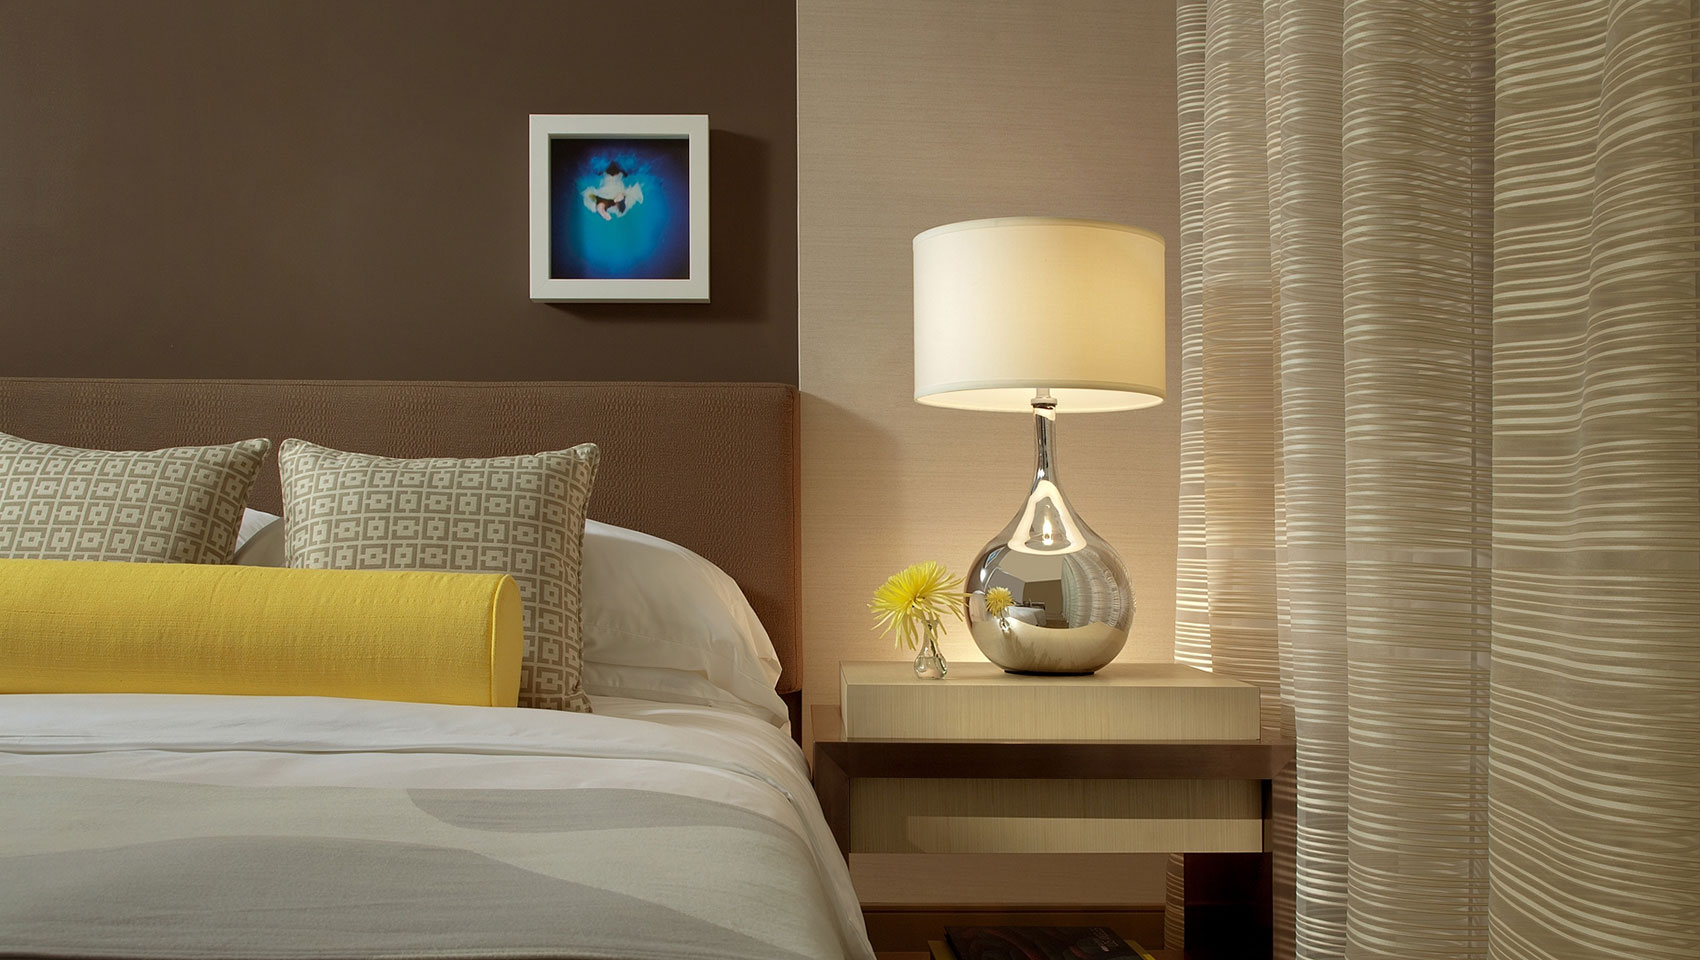 Kimpton Hotel Wilshire accessible guest room features